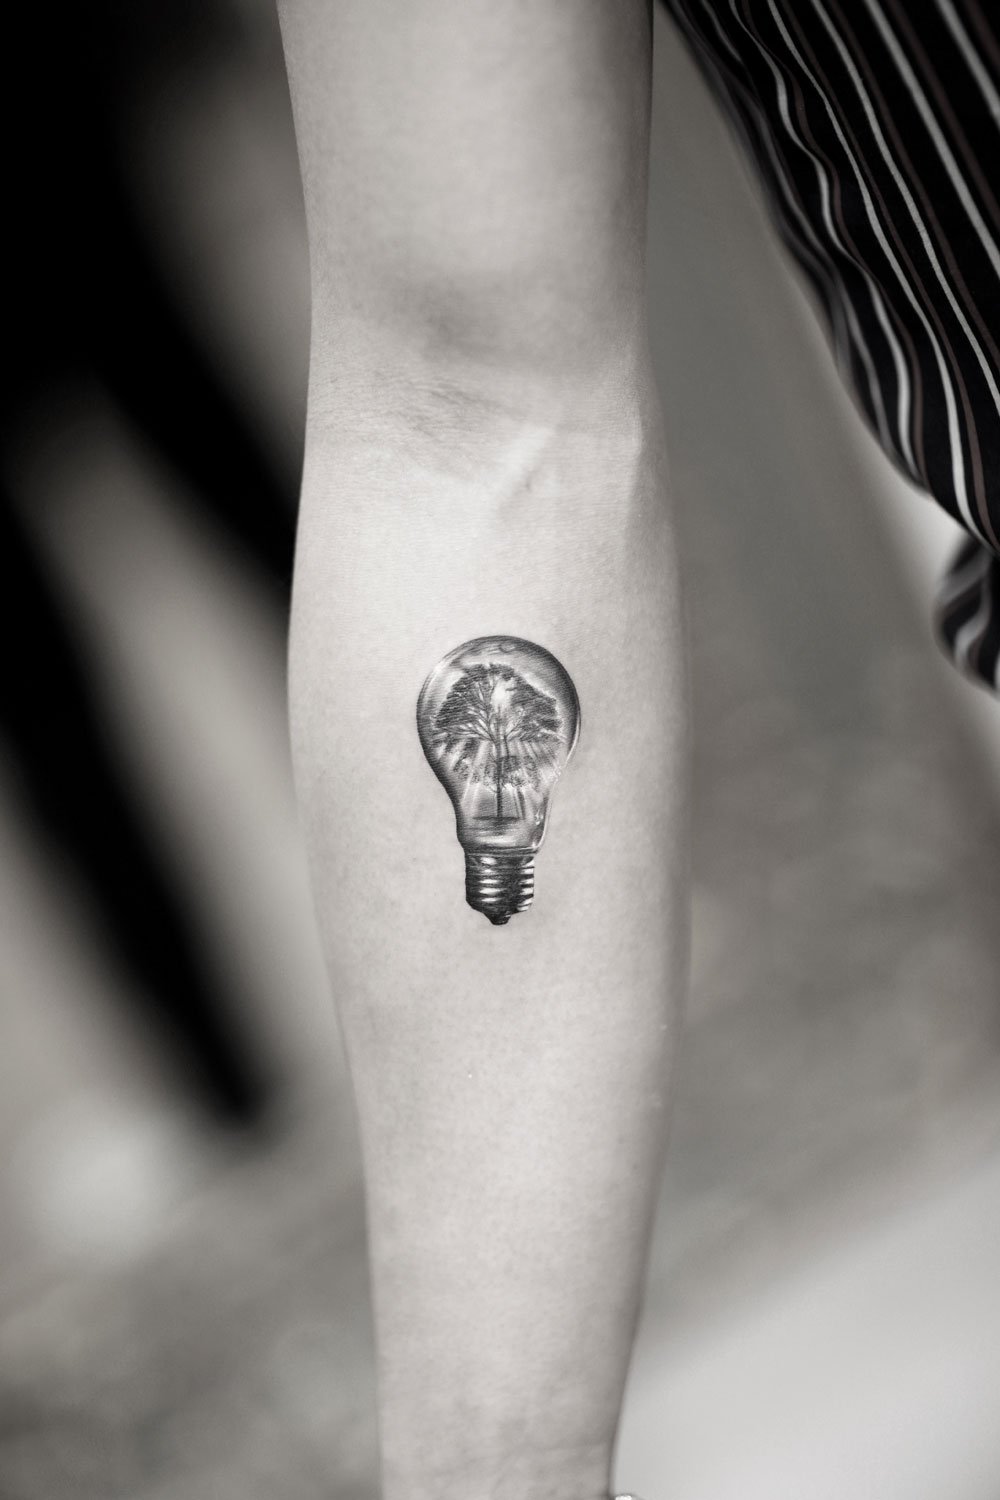 Lightbulb-and-Tree-by-Alessandro-Capozzi-in-Aureo-Roma-Tattoo-&-Gallery.jpg